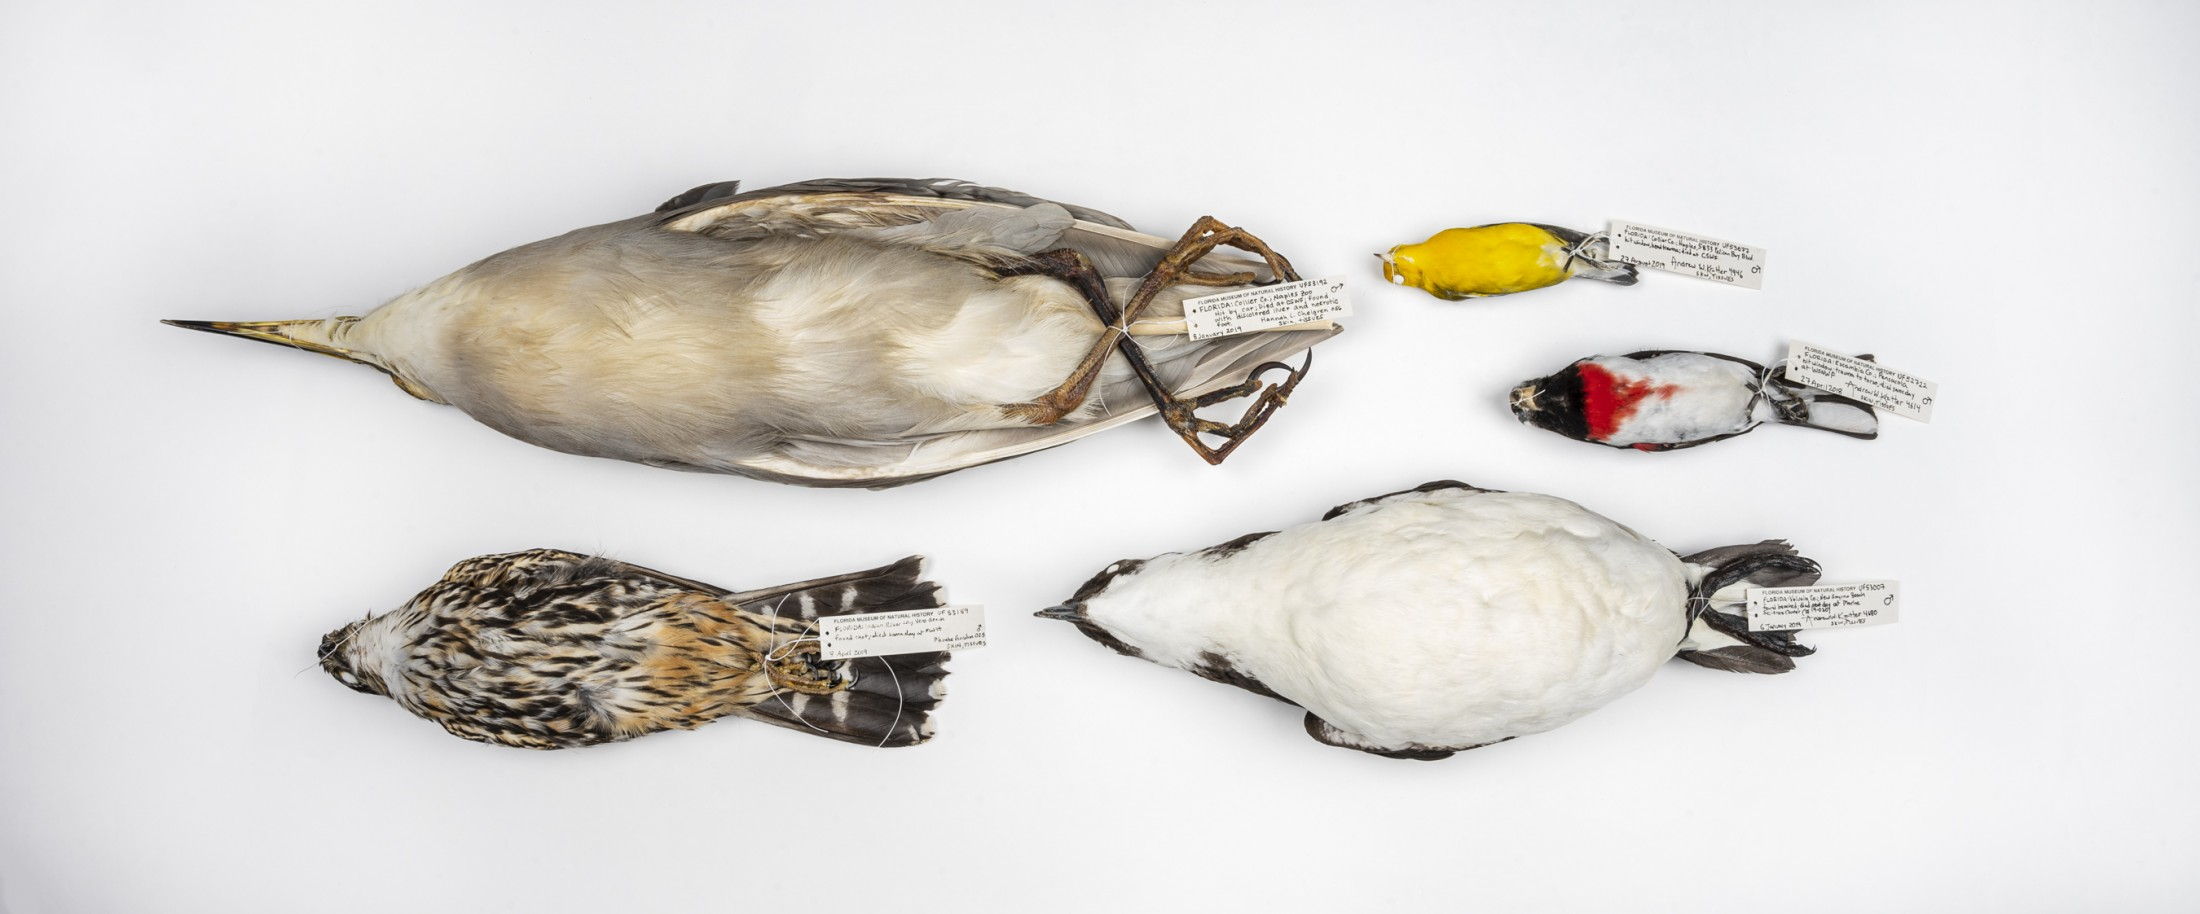 A collection of bird specimens